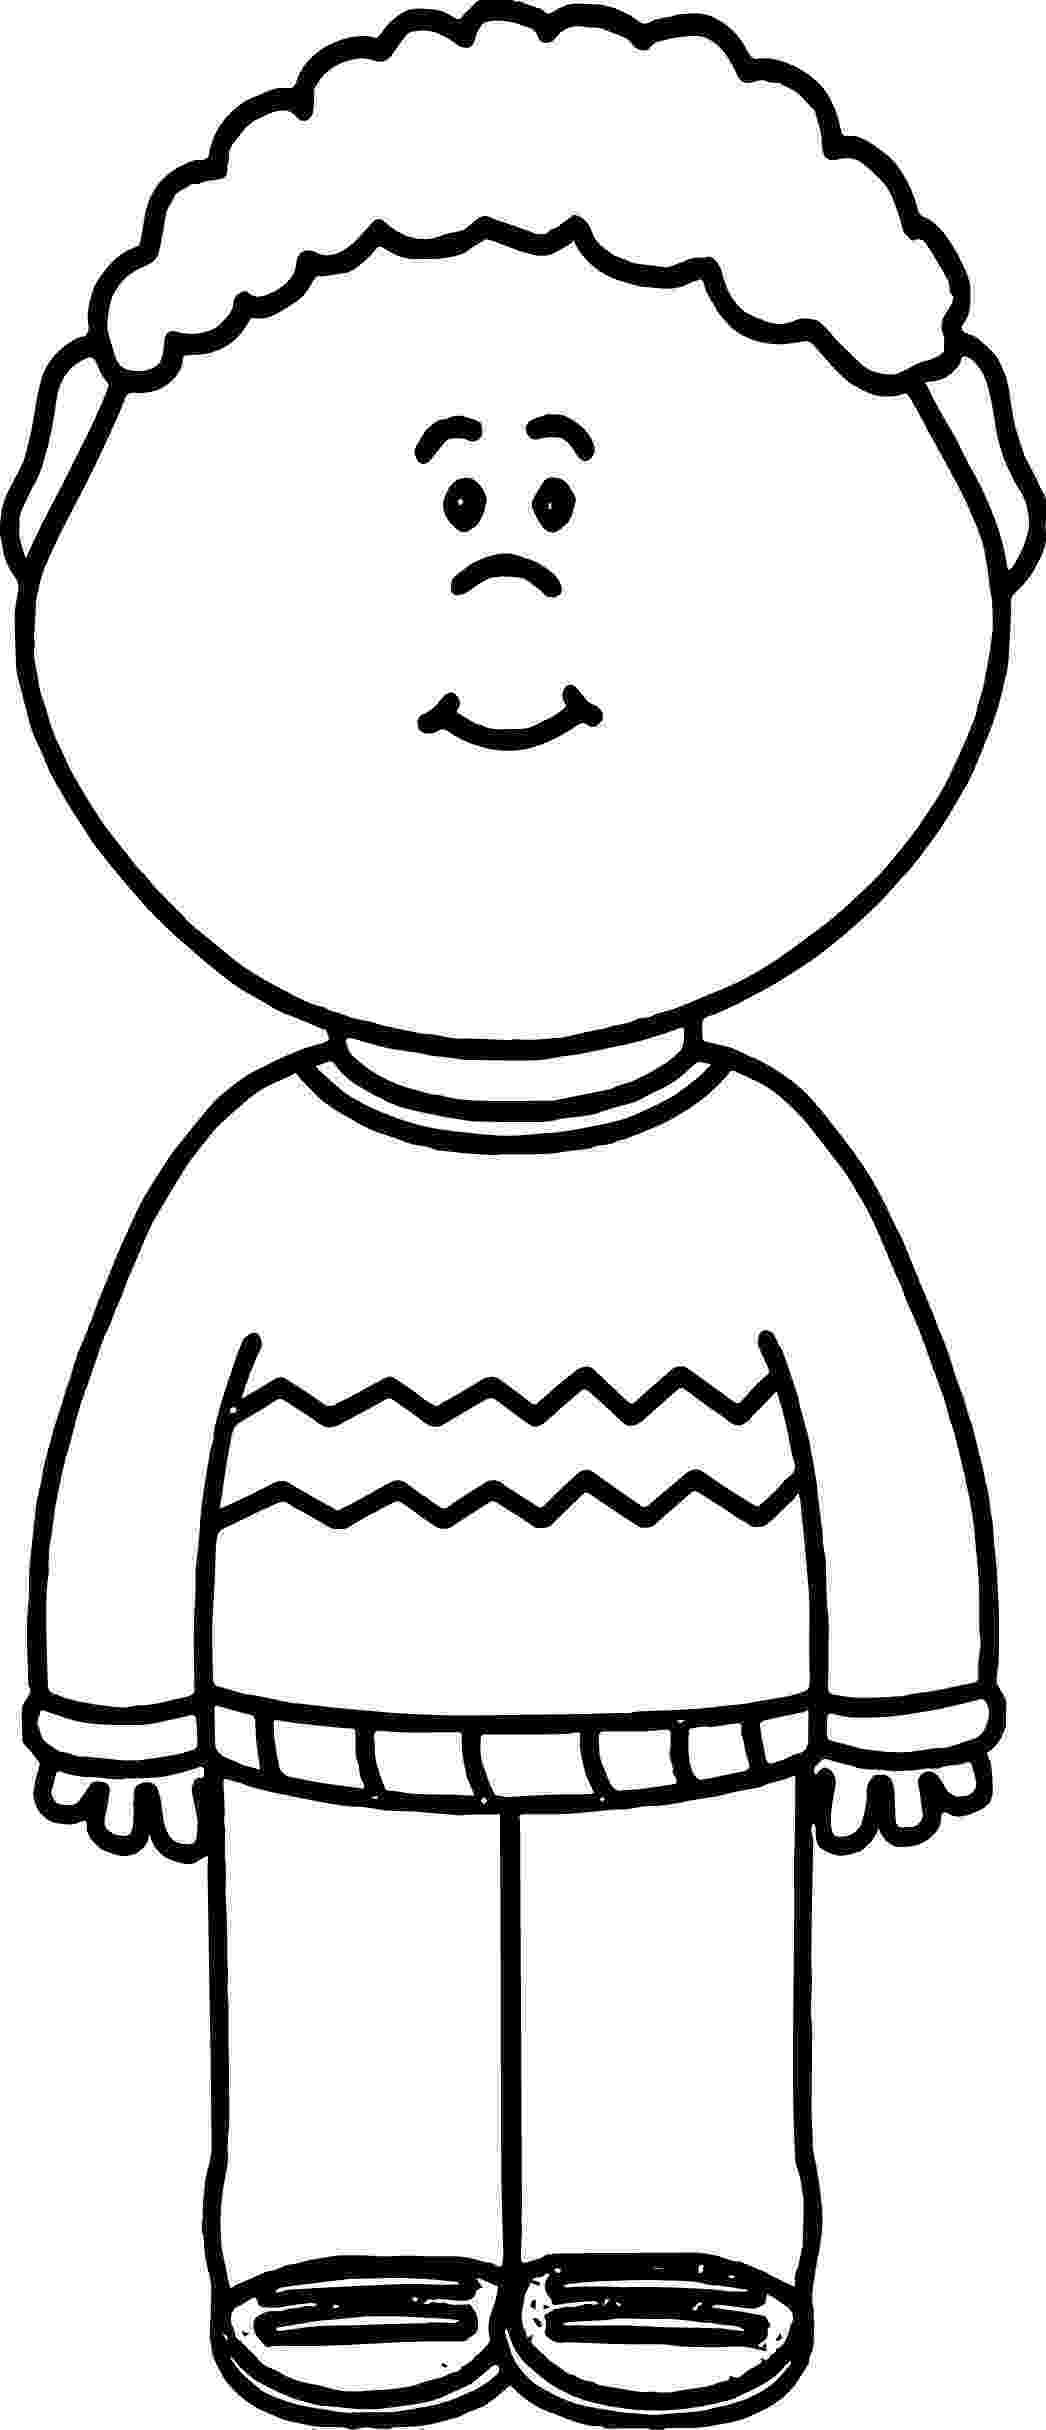 picture of a boy to color walking school boy coloring page free printable coloring a boy picture to of color